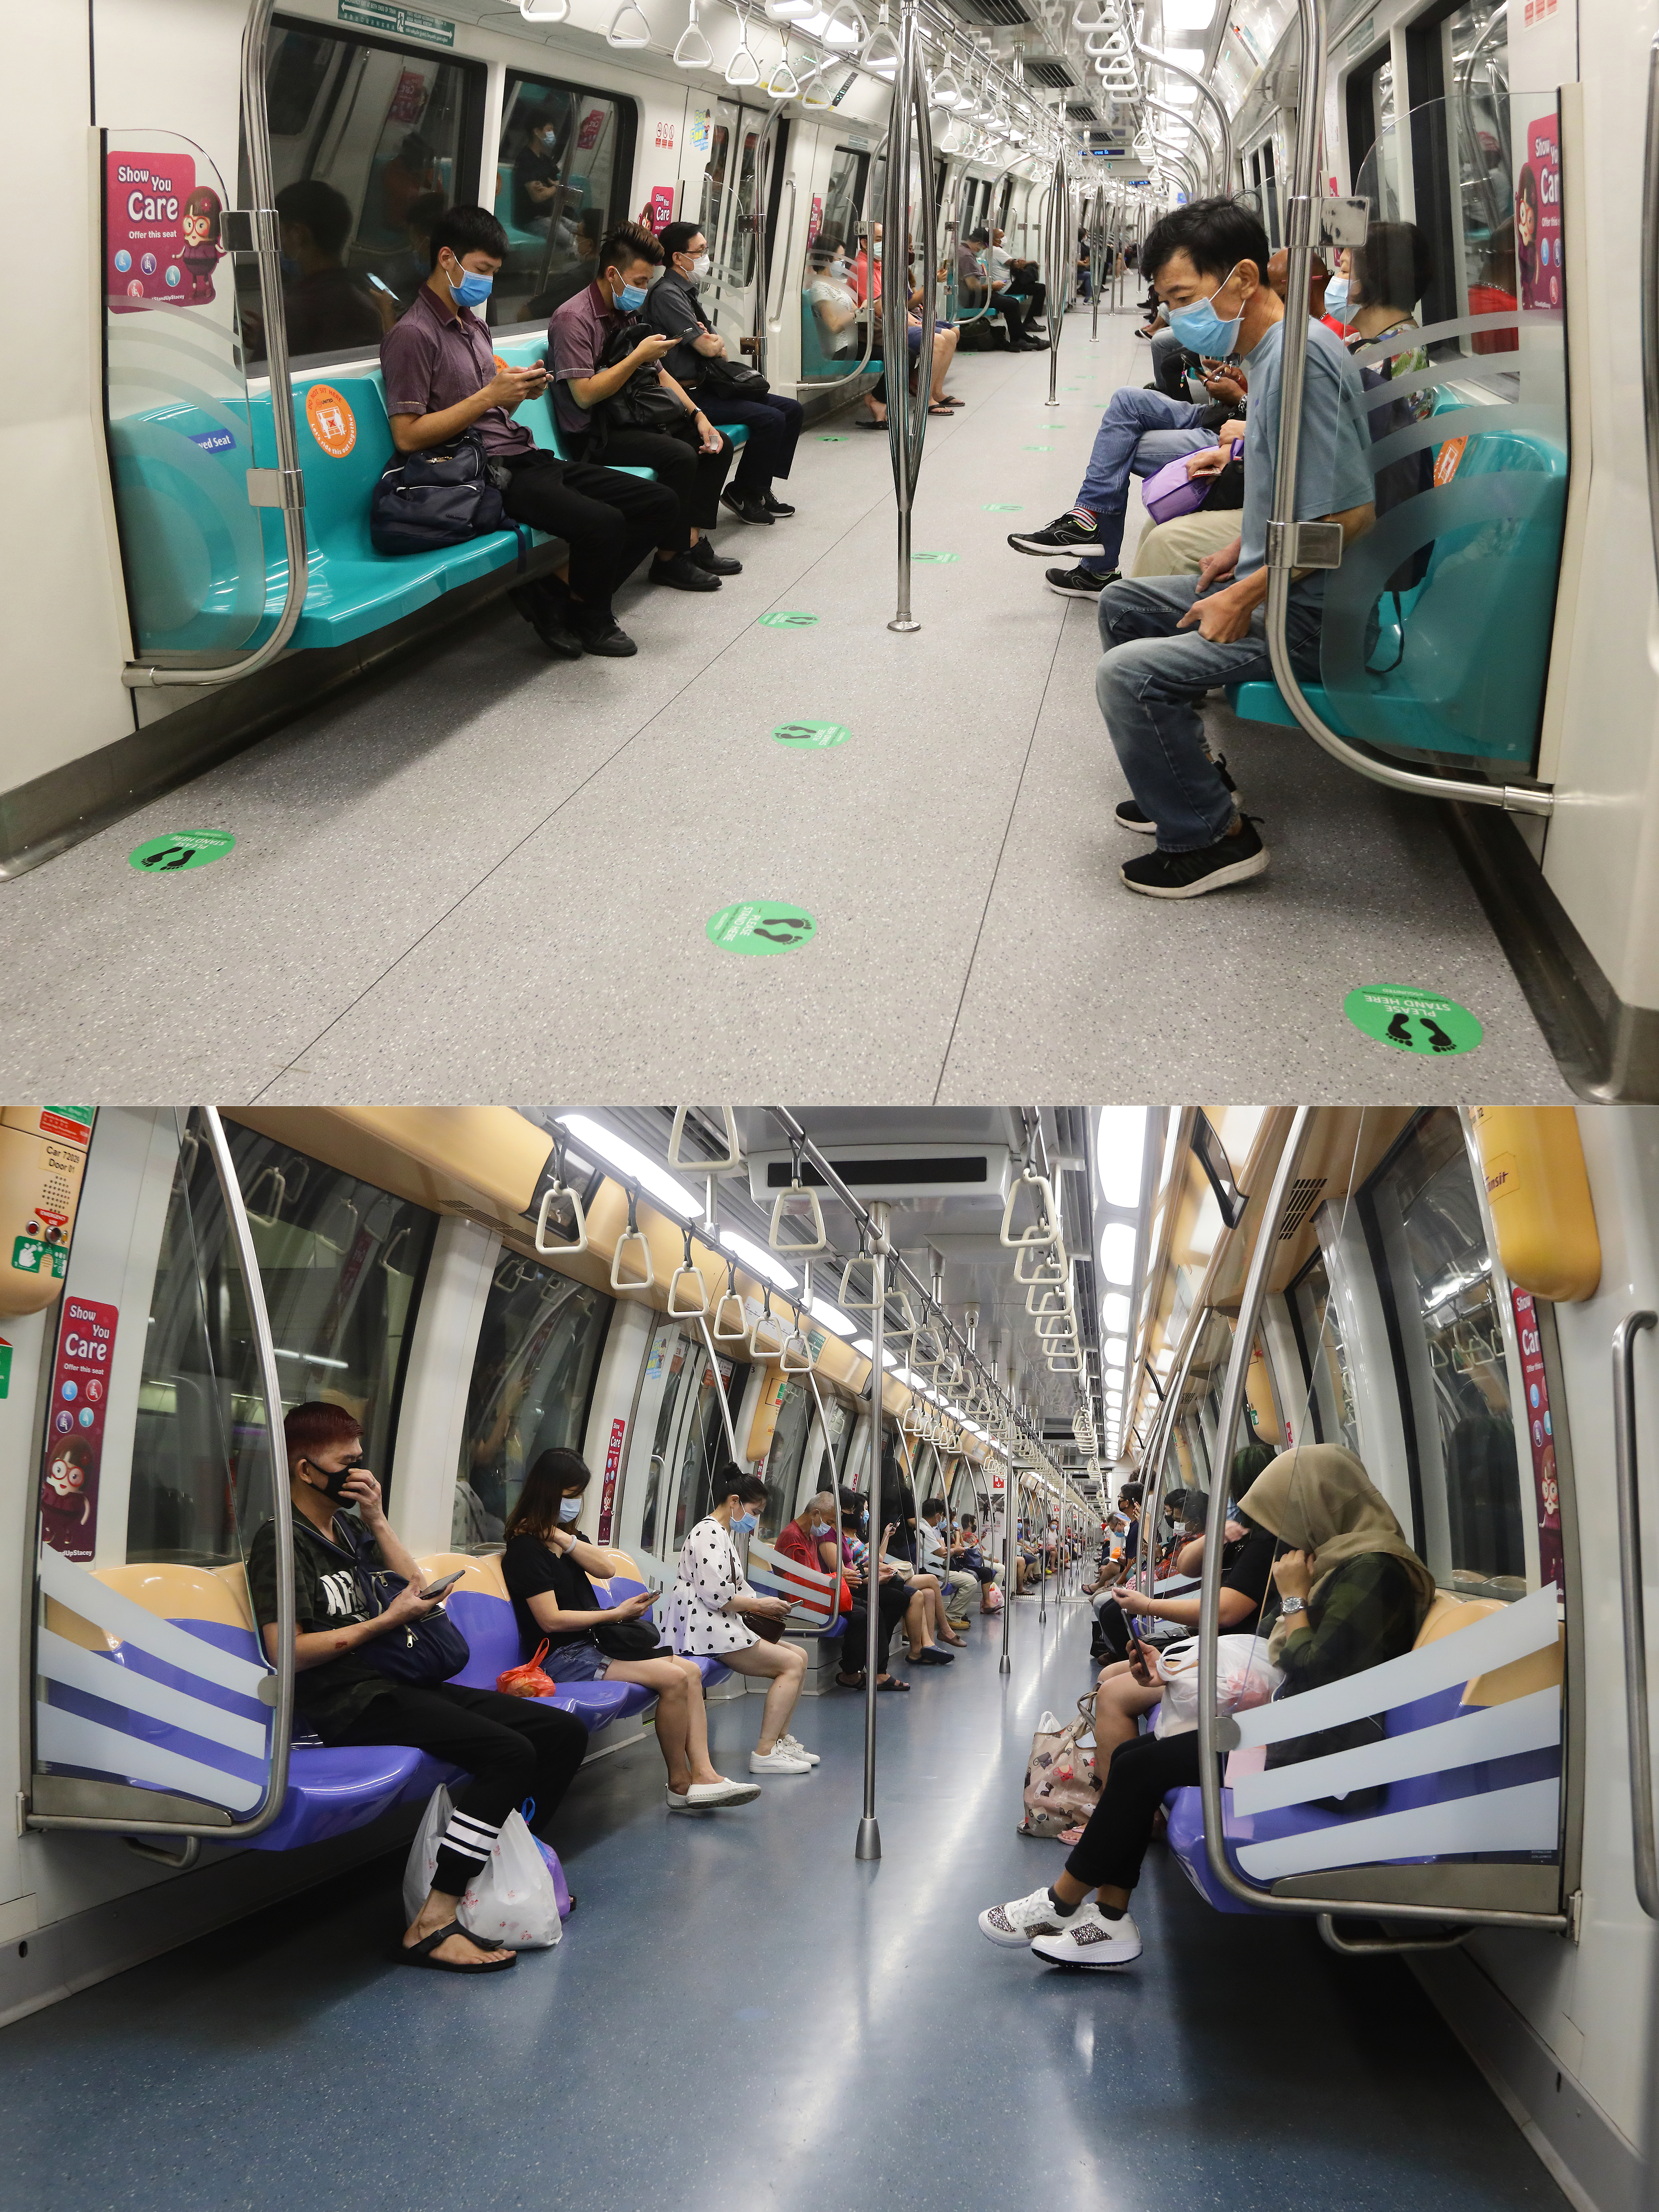 SINGAPORE - JUNE 02:  (EDITORS NOTE: Image is a digital composite) In this composite image, commuters ride the train on April 16, 2020 (Top- Image Number 1210095133) and on June 2, 2020 (Bottom) before and after the government implemented a social distancing stickers and markers on board the public train. The authority decided to remove all safe distancing stickers and markers from trains and buses as they deemed it is too challenging for commuters to keep their social distance. Today, Singapore embarks on phase one of a three phase approach against the coronavirus (COVID-19) pandemic as it begins to ease the partial lockdown measures by allowing the safe re-opening of economic activities which do not pose high risk of transmission. This include the resumption of selected health services, re-opening of schools with school children attending schools on rotational basis, manufacturing and production facilities, construction sites that adhere to safety measures, finance and information services that do not require interactions and places of worship, amongst others. Retail outlets, social and entertainment activities will remain closed and dining in at food and beverage outlets will still be disallowed. The government will further ease restriction by the middle of June if the infection rate within the community remains low over the next two weeks.(Photo by Suhaimi Abdullah/Getty Images)